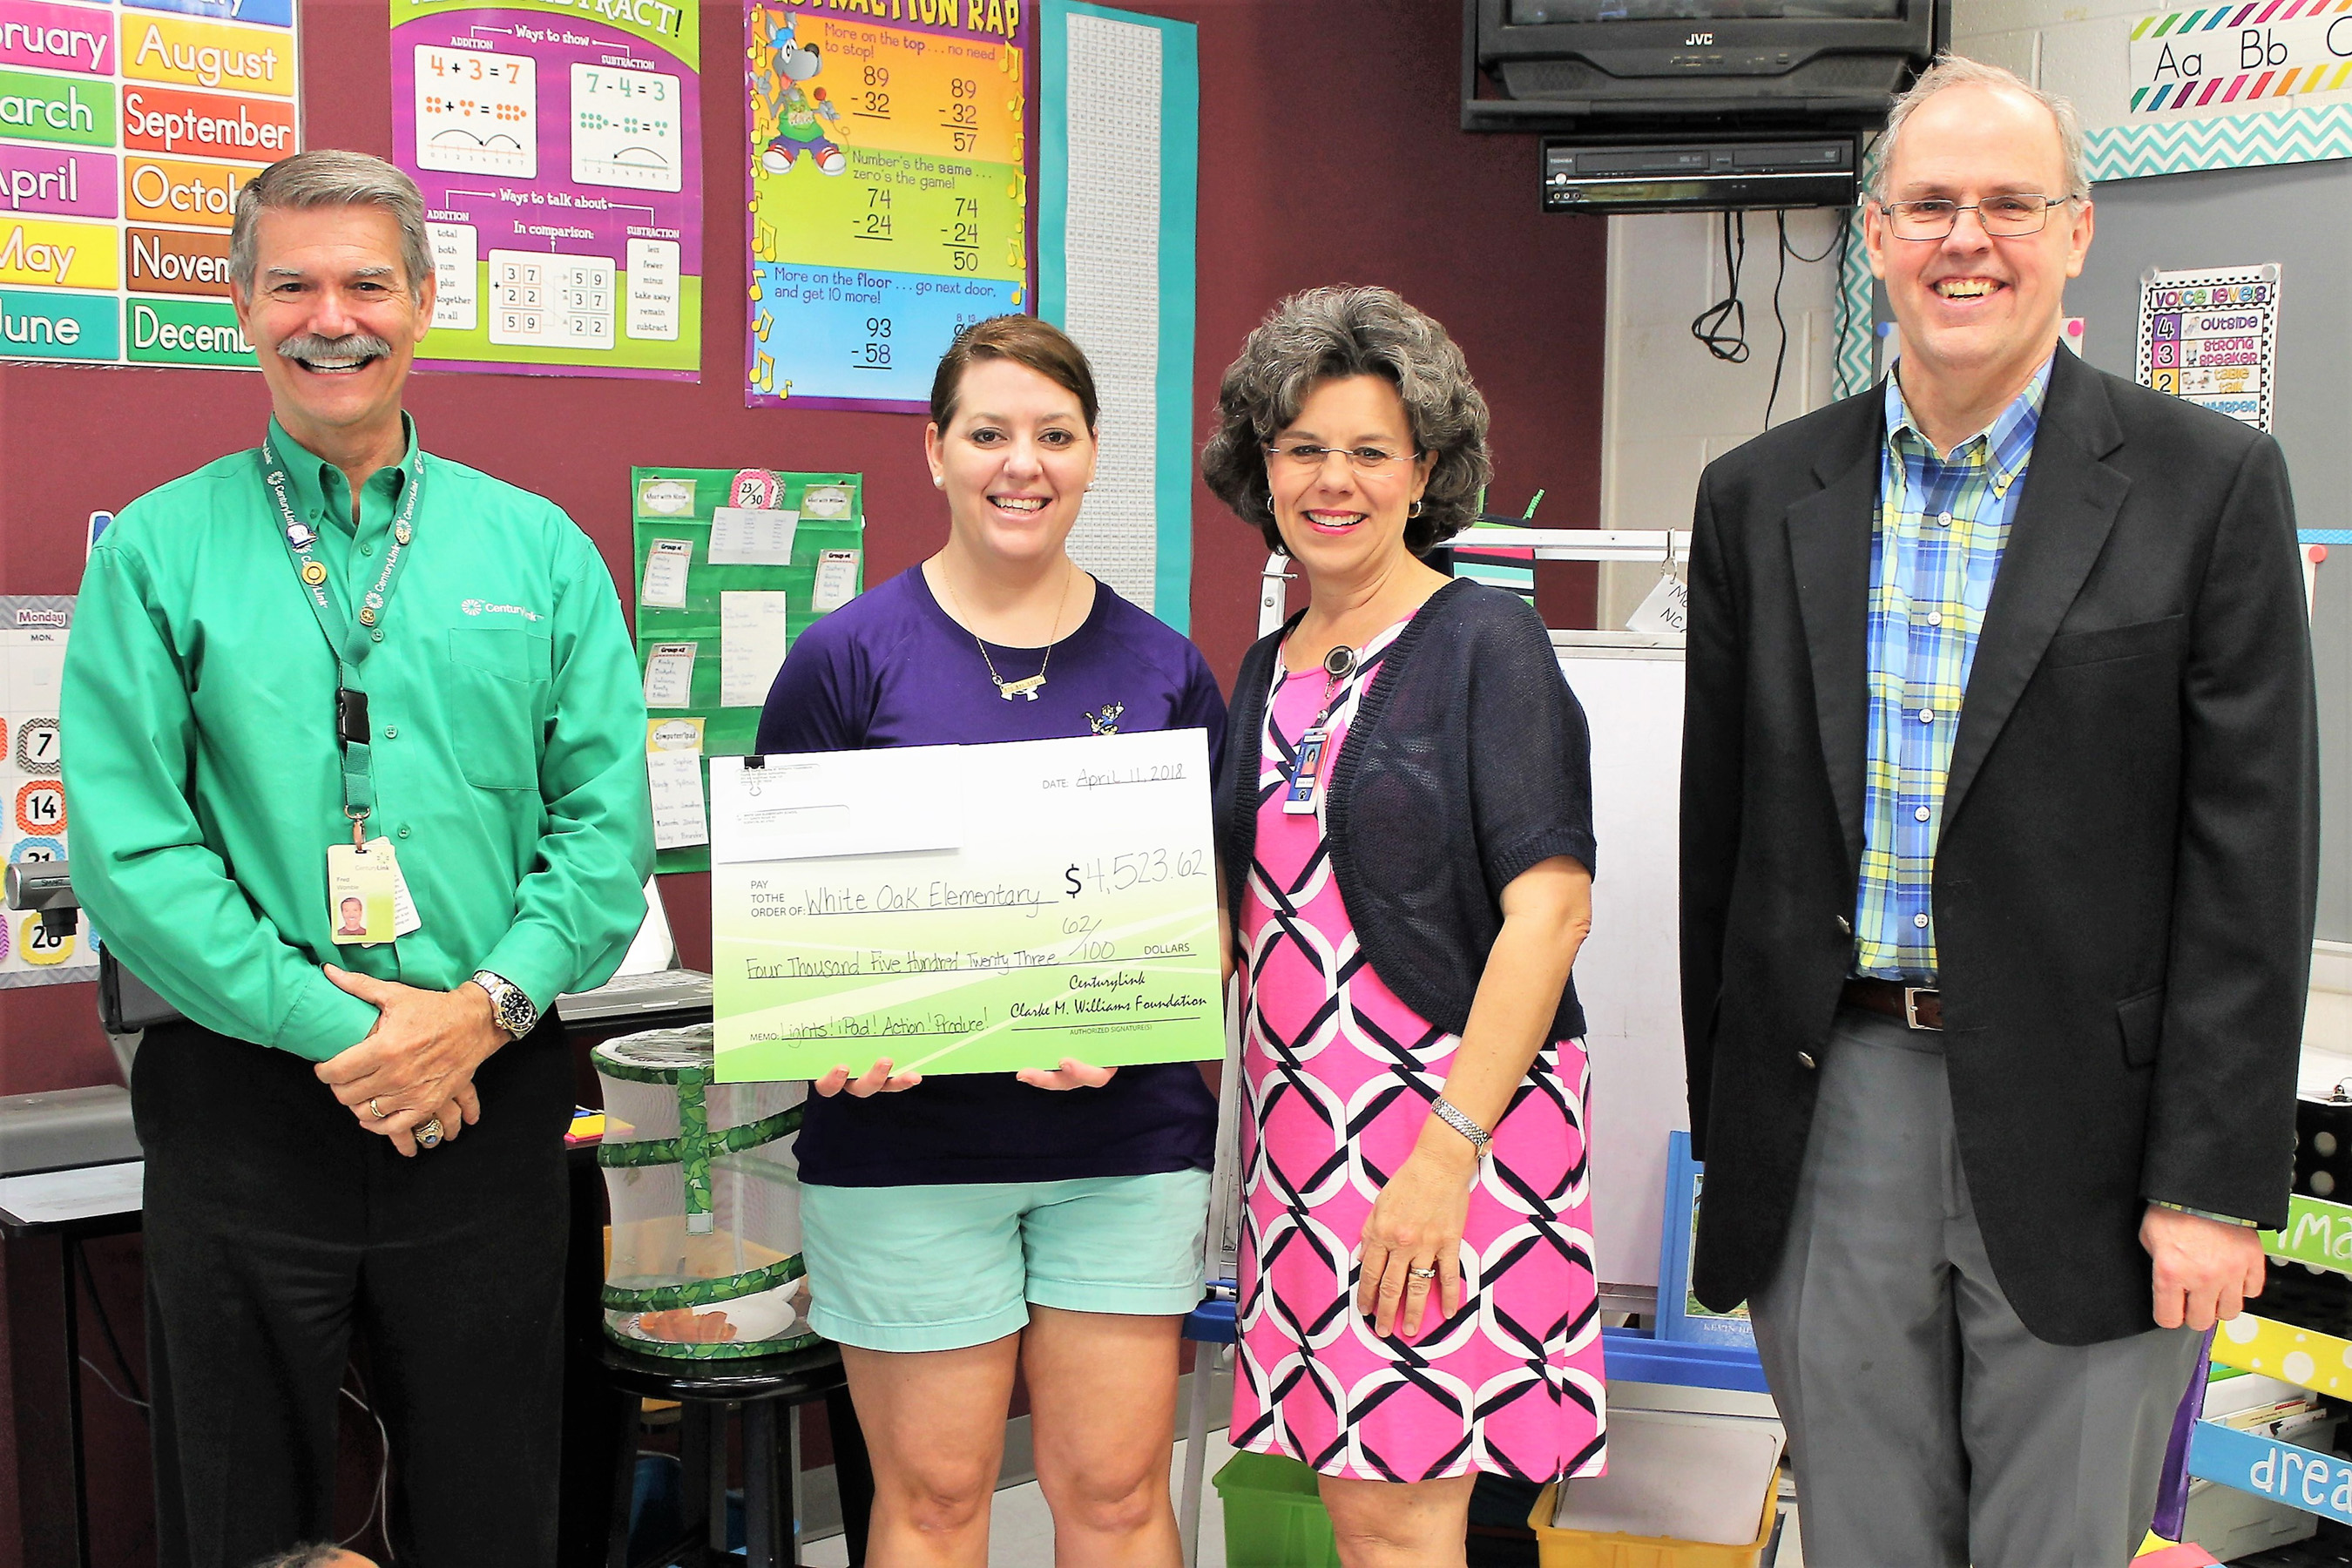 "LeAnn Nixon of White Oak Elementary School in Edenton, North Carolina, received a grant for $4,523 for her project titled ""Lights! iPad! Action! Produce!"" through the CenturyLink Clarke M. Williams Foundation's Teachers and Technology grant program. Students will plan and produce live stream productions integrating iPads, wireless microphones and a green screen live streaming app. They will incorporate their activities into reading, math, science, social studies and, in the future, cultural arts. In the photo are Fred Womble - CenturyLink Manager of Regional Operations, LeAnn Nixon, Sheila Evans - White Oak Principal, and Larry Mathiot - CenturyLink Public Policy Manager."